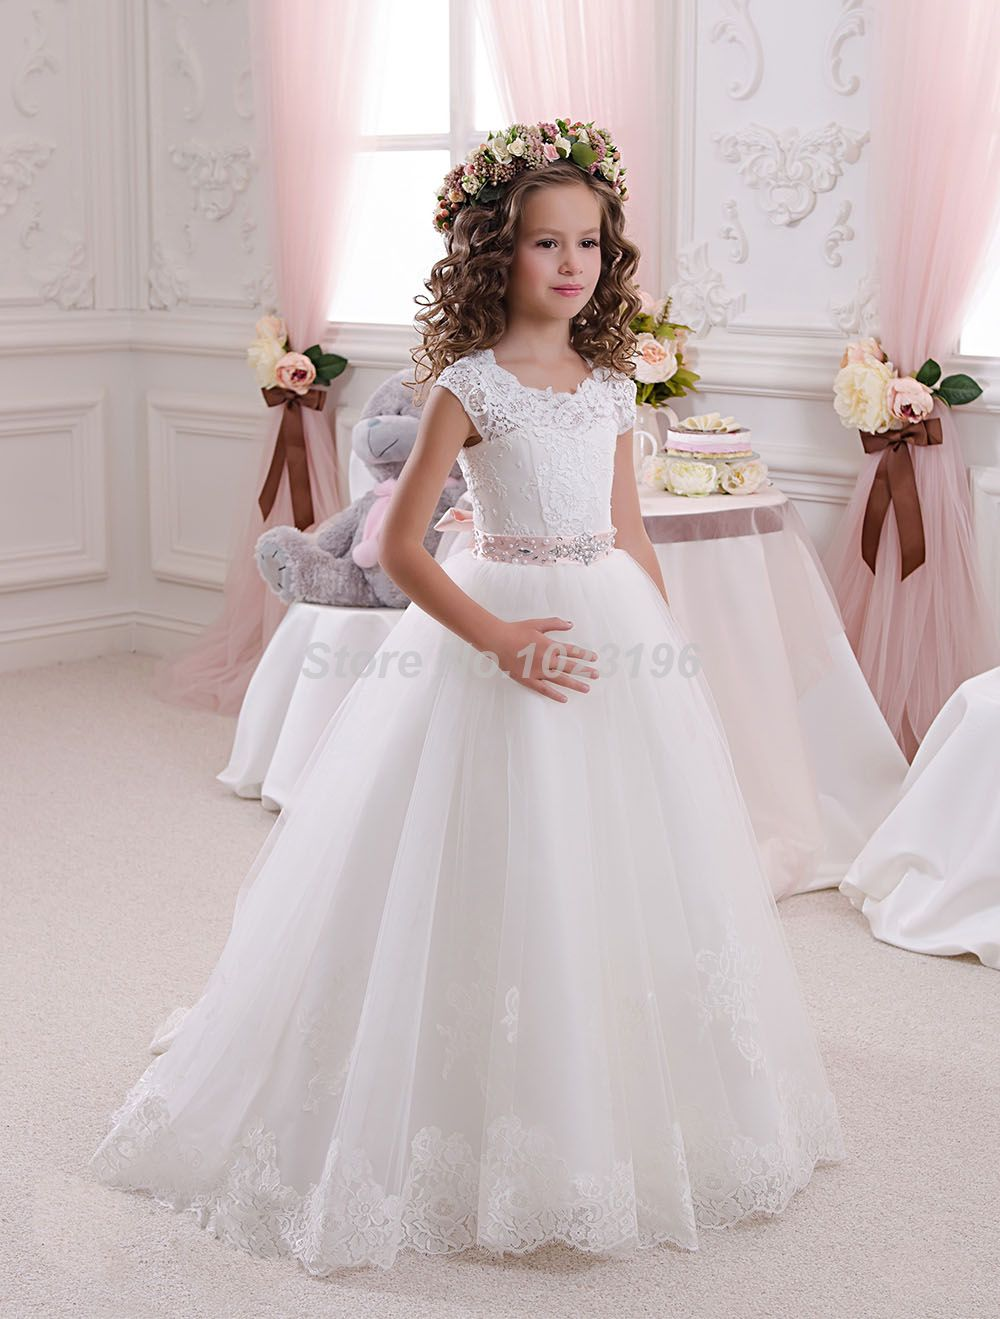 Wedding dresses for little girls 2017 pentelei cheap with long hot pretty scoop ivory white lace flower girls dresses 2016 ball gown belt floor length girls ombrellifo Image collections